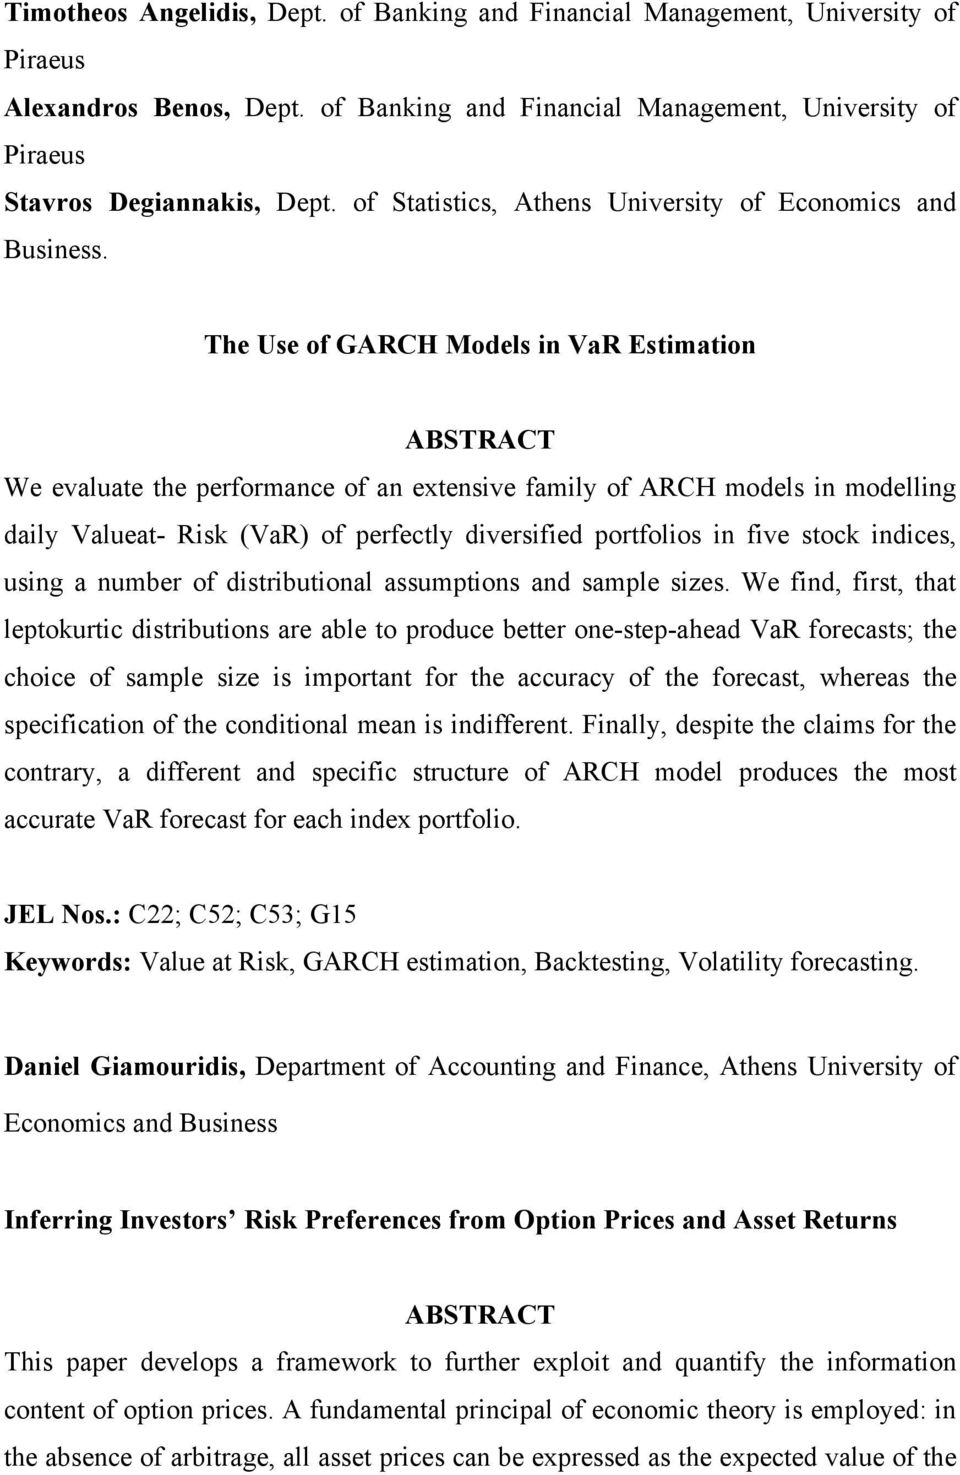 The Use of GARCH Models in VaR Estimation We evaluate the performance of an extensive family of ARCH models in modelling daily Valueat- Risk (VaR) of perfectly diversified portfolios in five stock